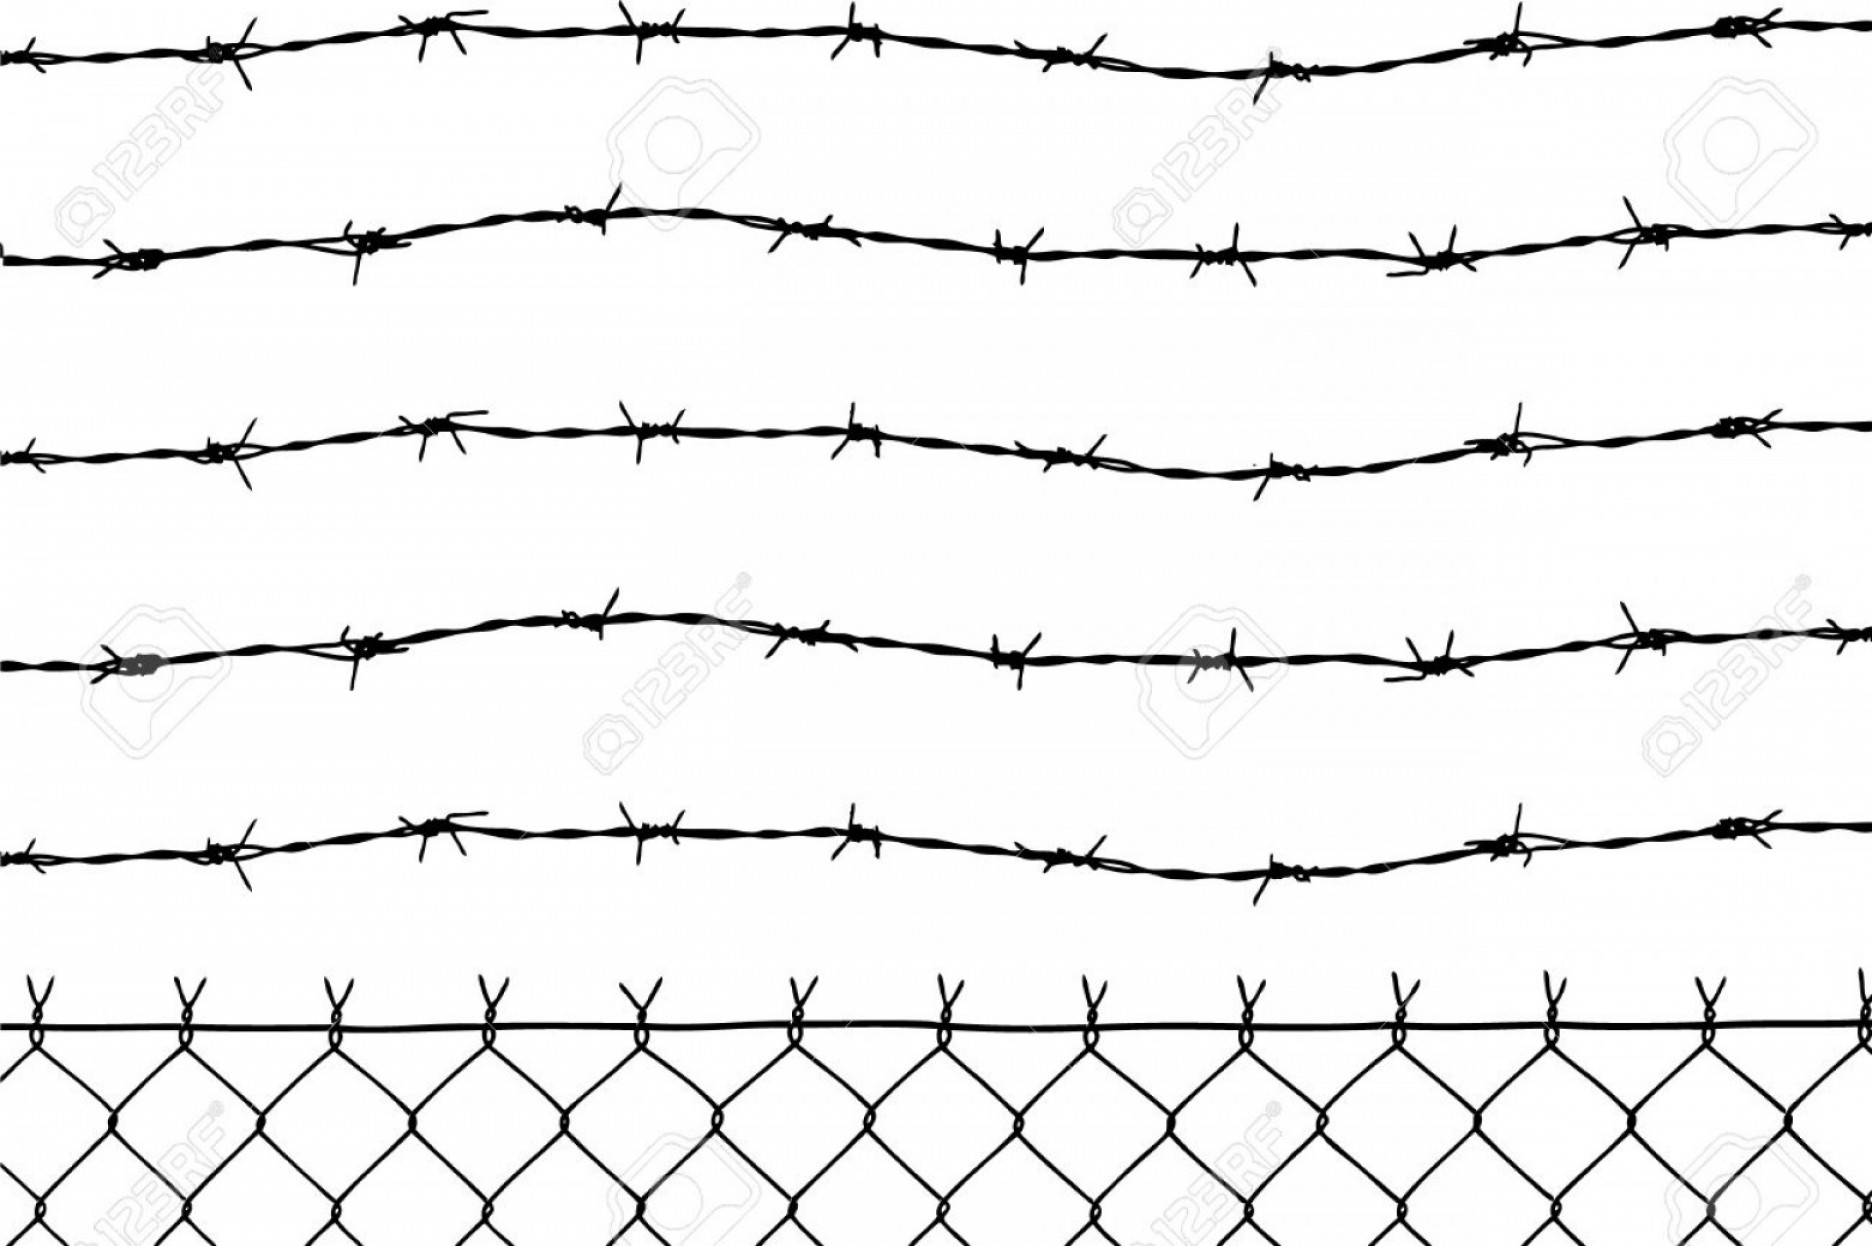 Fence Post Barbed Wire Vector Clip Art: Photowired Fence With Five Barbed Wires